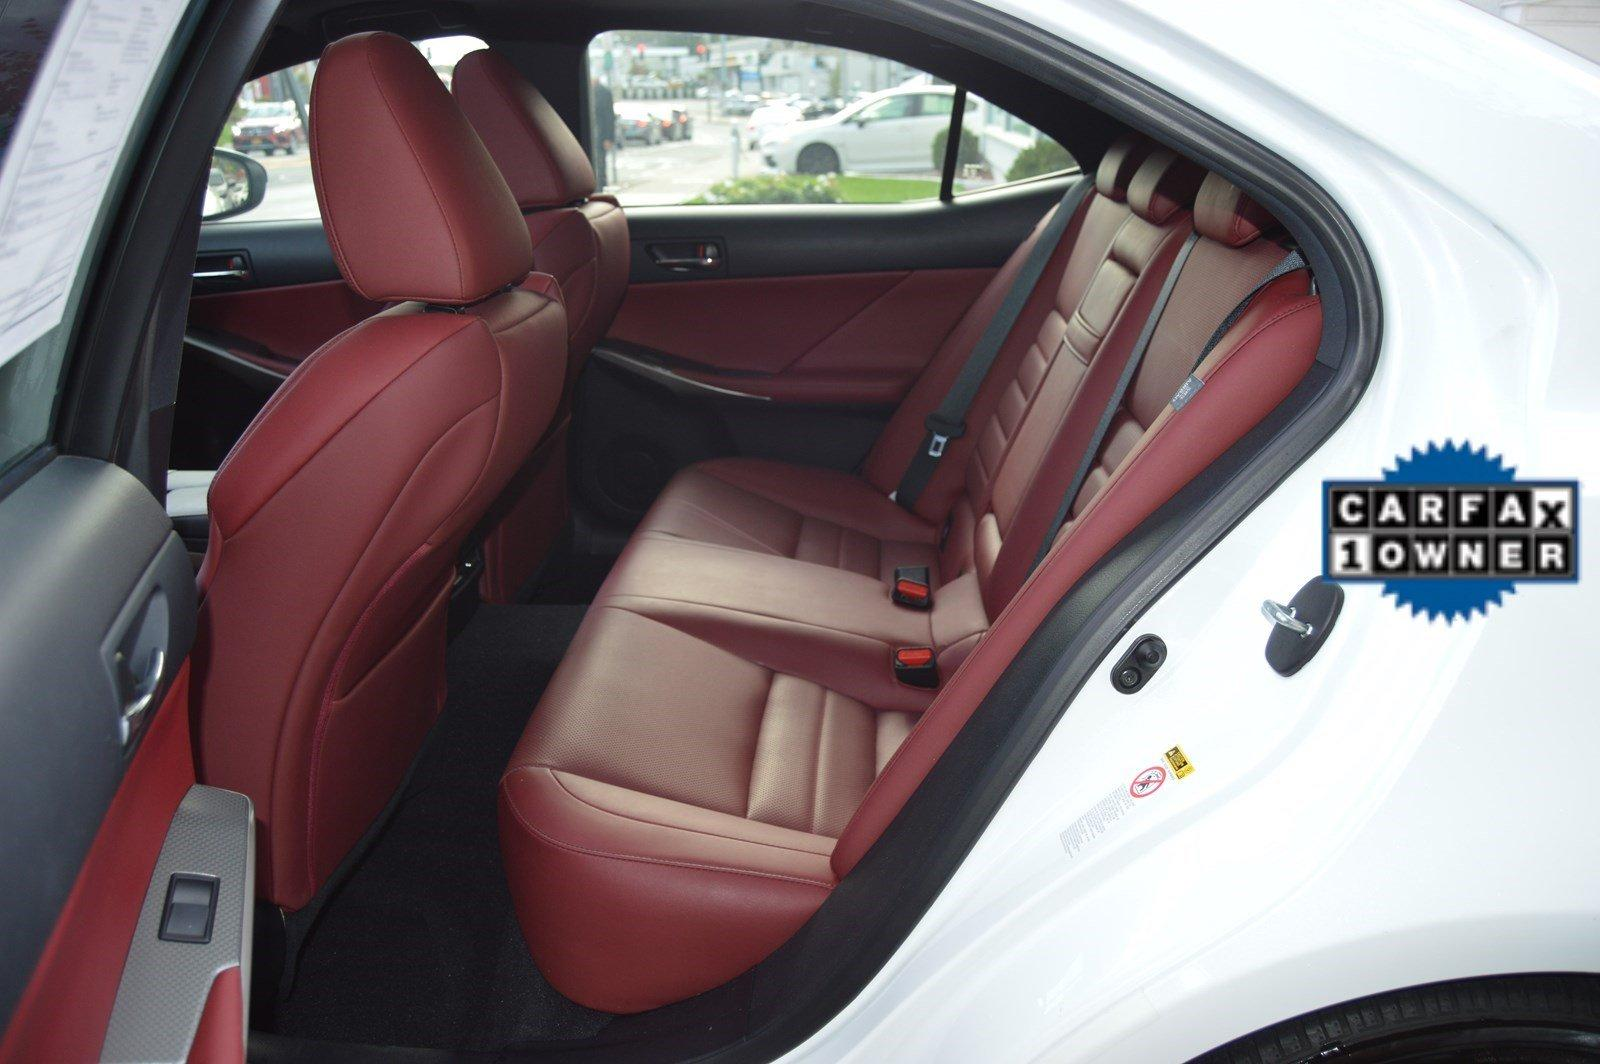 2015 lexus is 250 f sport red interior stock 2286 for sale near great neck ny ny lexus dealer